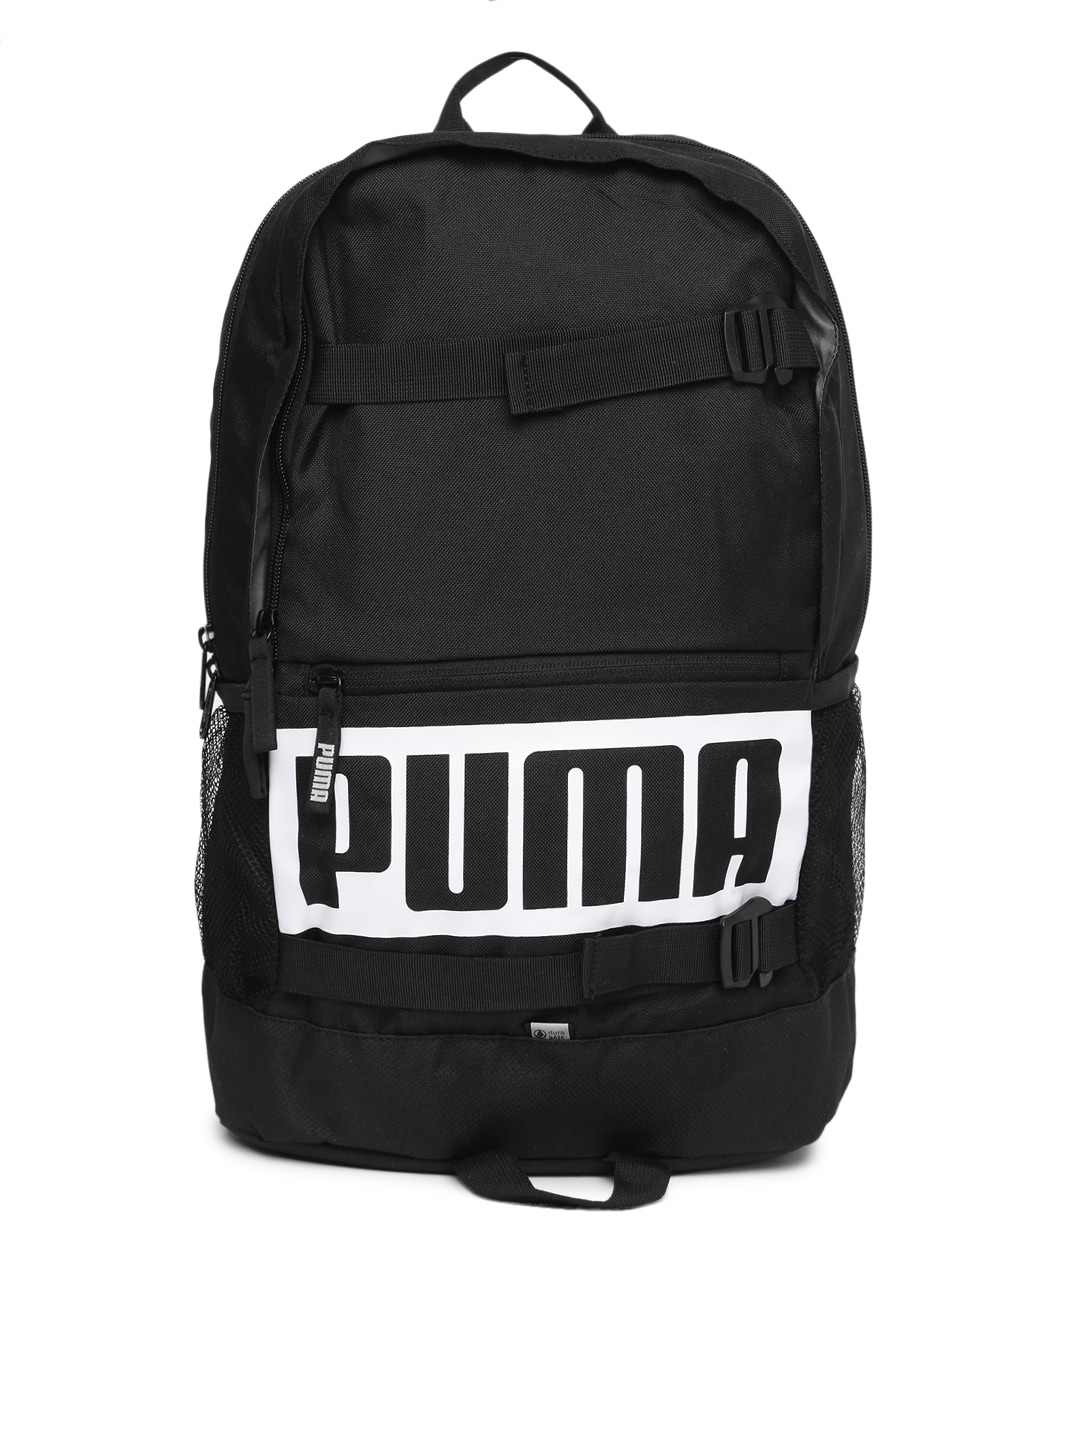 Ywc Puma - Buy Ywc Puma online in India d6ba73439f4e3